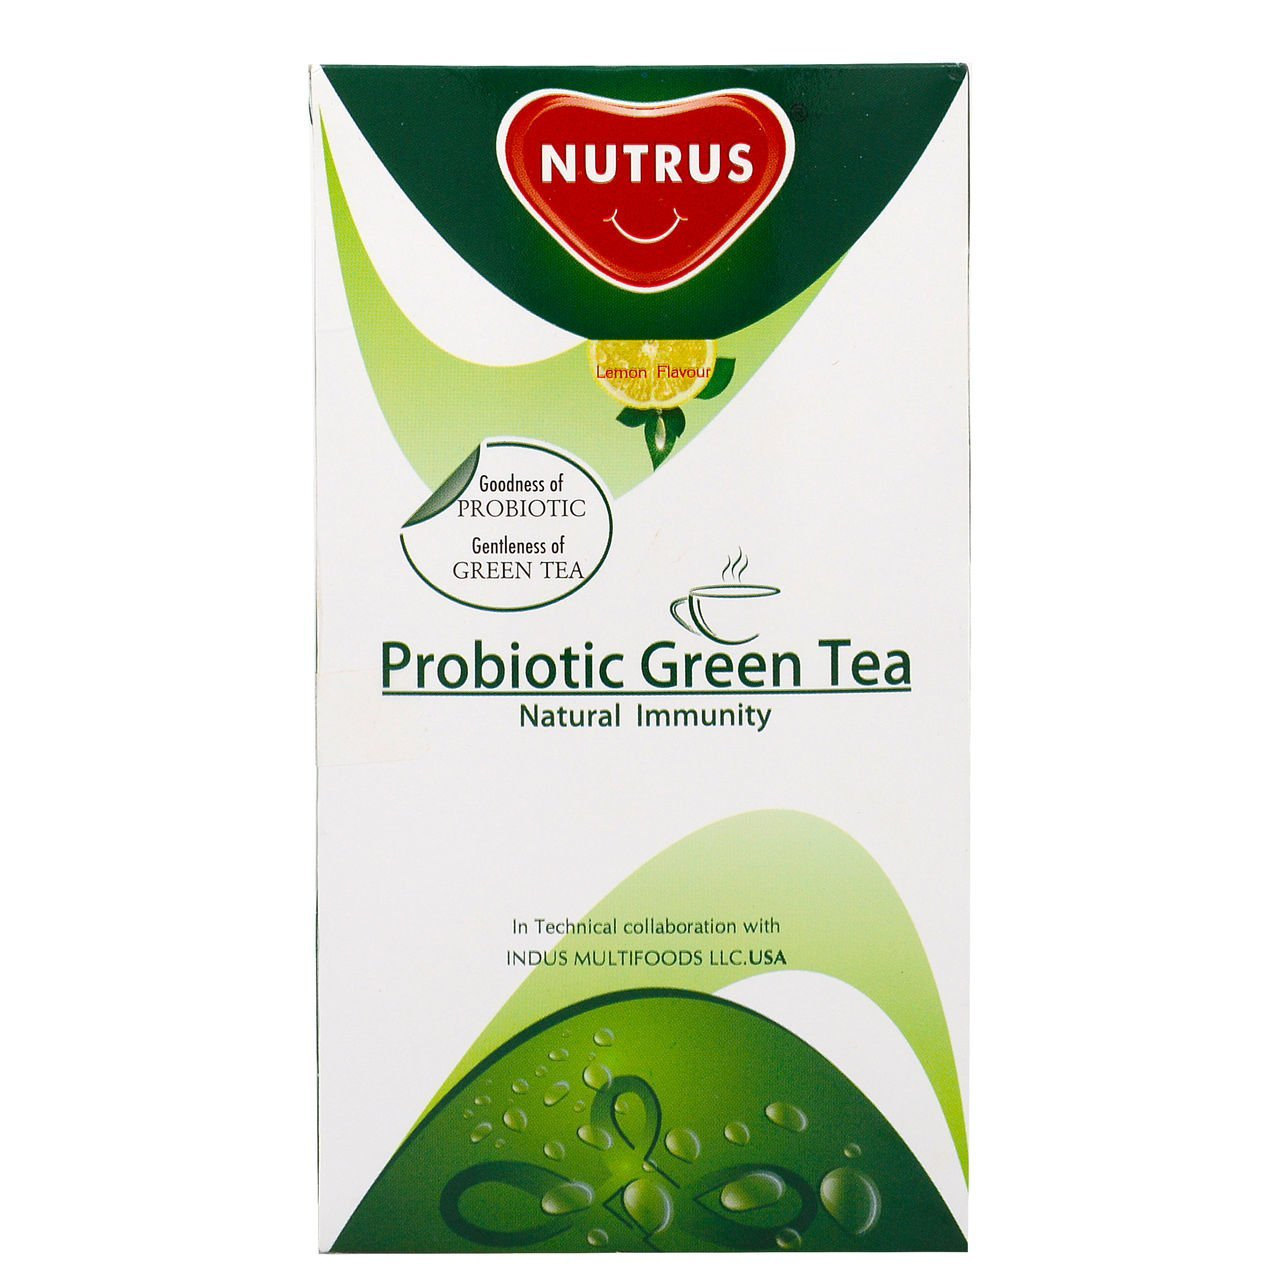 Nutrus Green Tea - Probiotic, 20 Bags